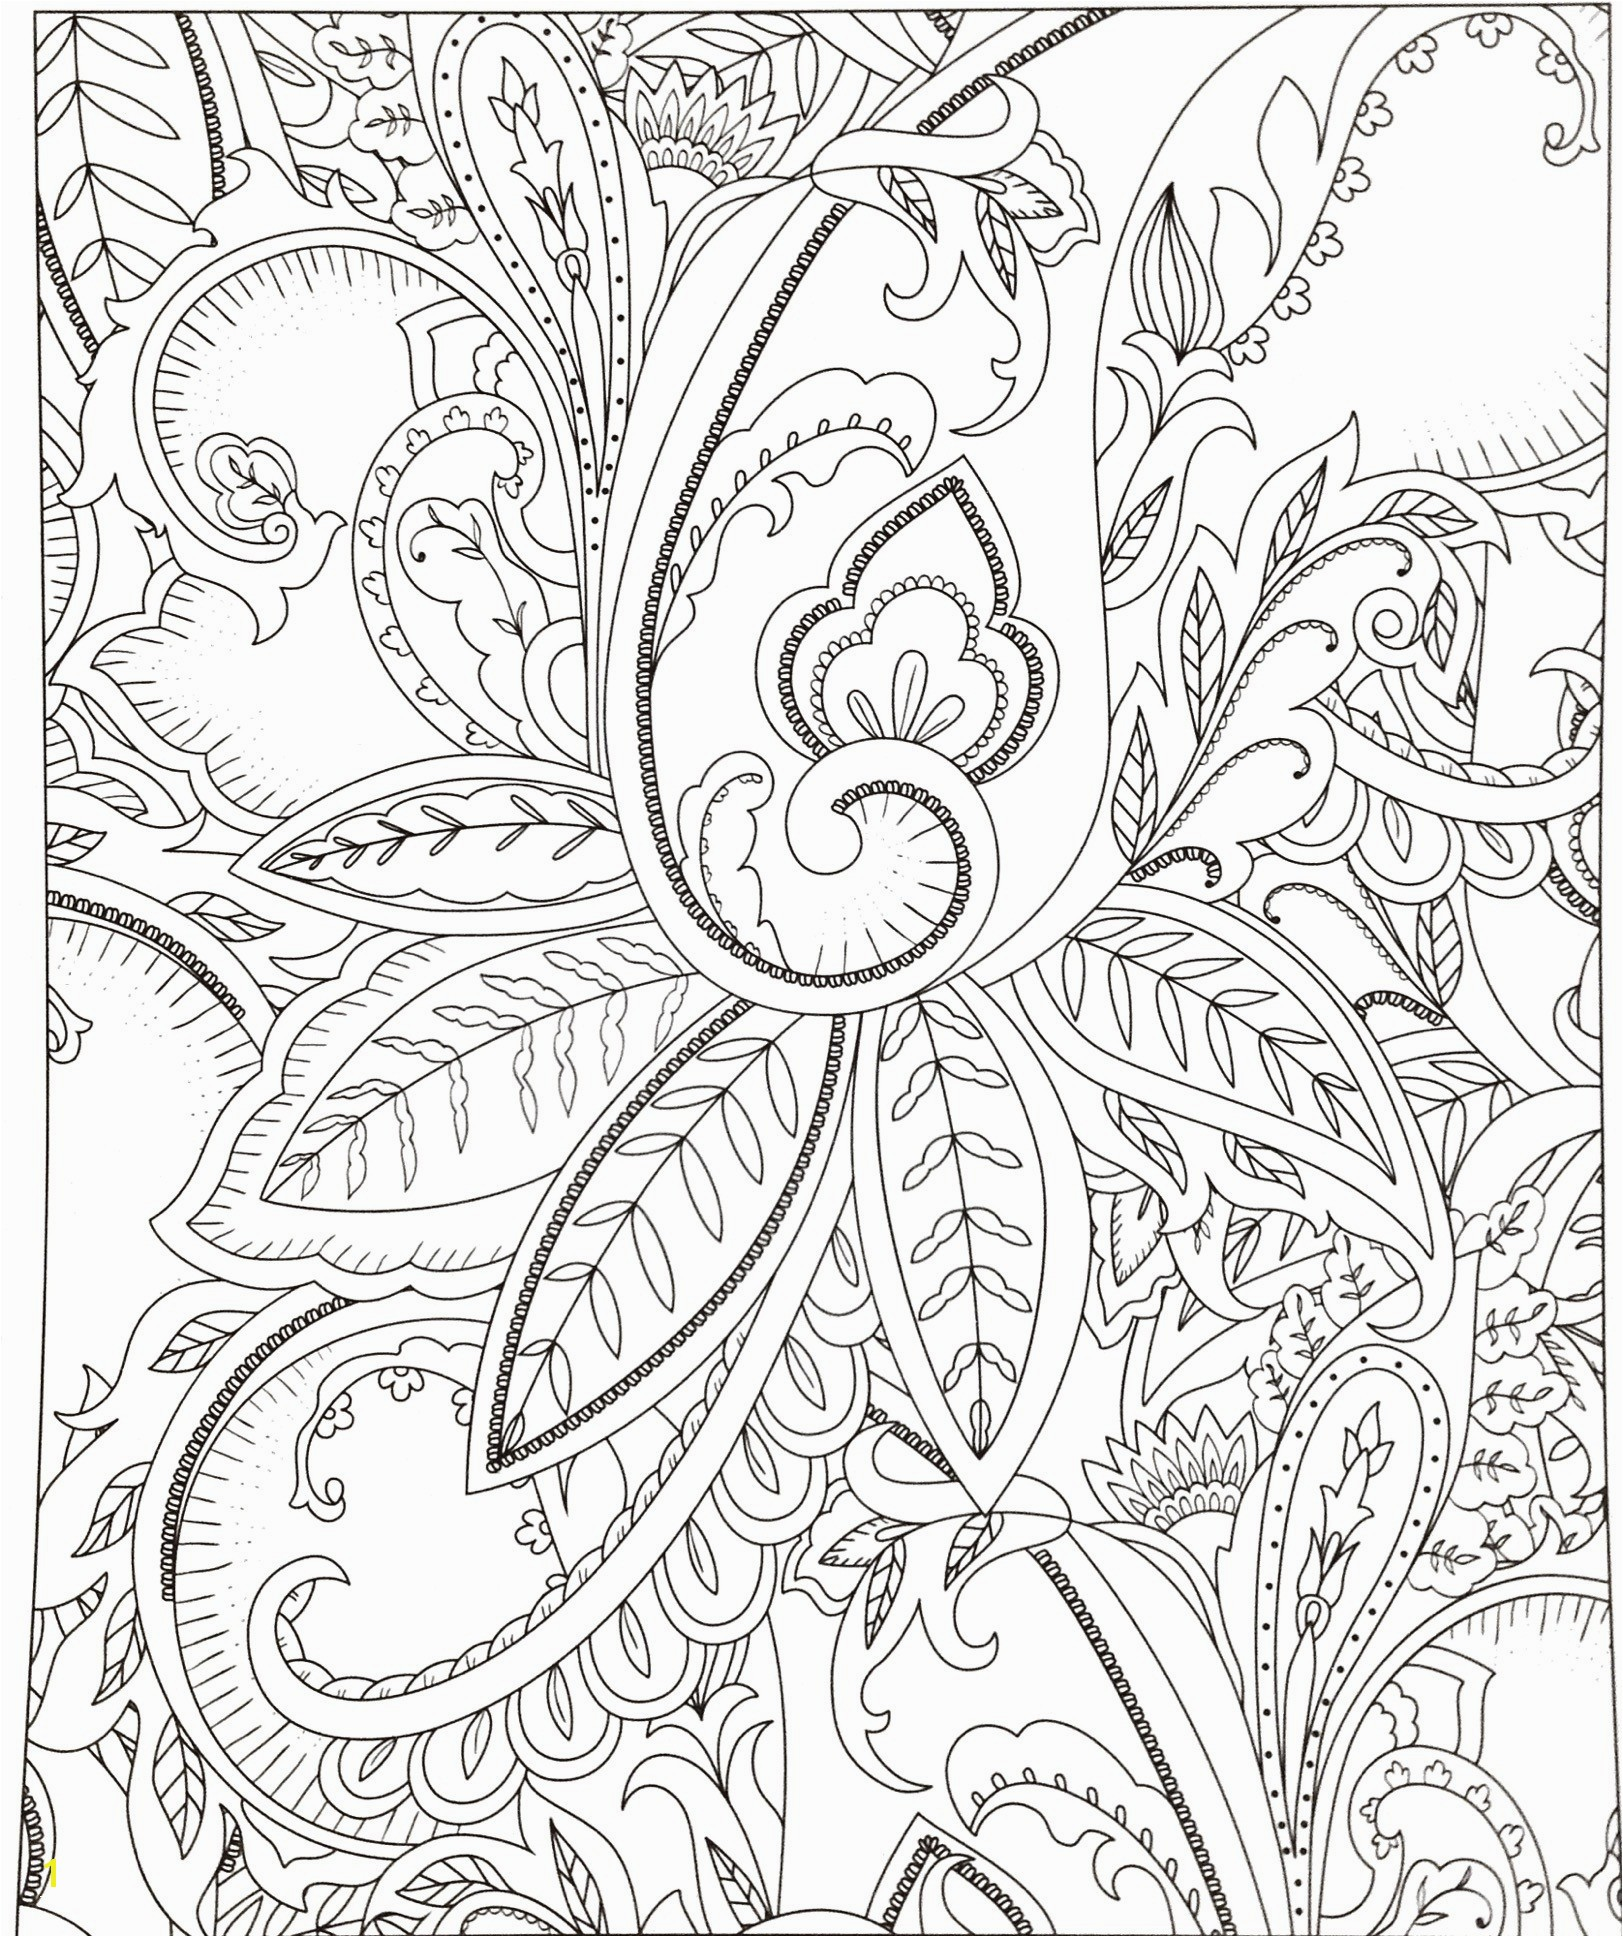 Lds Coloring Pages Free Animal Printouts Beautiful Western Coloring Pages Lovely